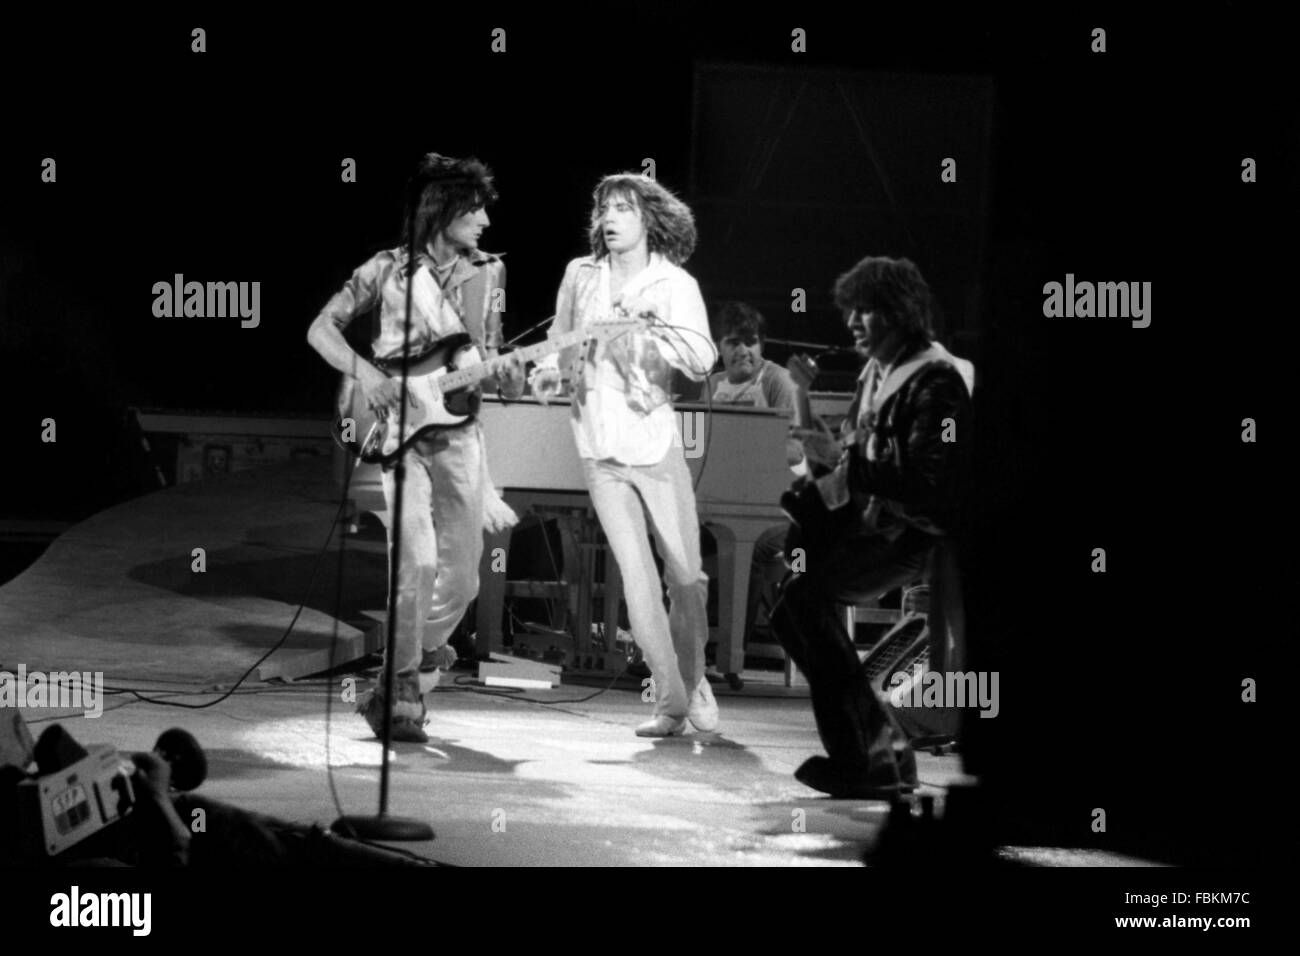 Rolling Stones, Mick Jagger and Keith Richards -  1970  -  France / Ile-de-France (region) / Paris  -  Rolling Stones, Stock Photo